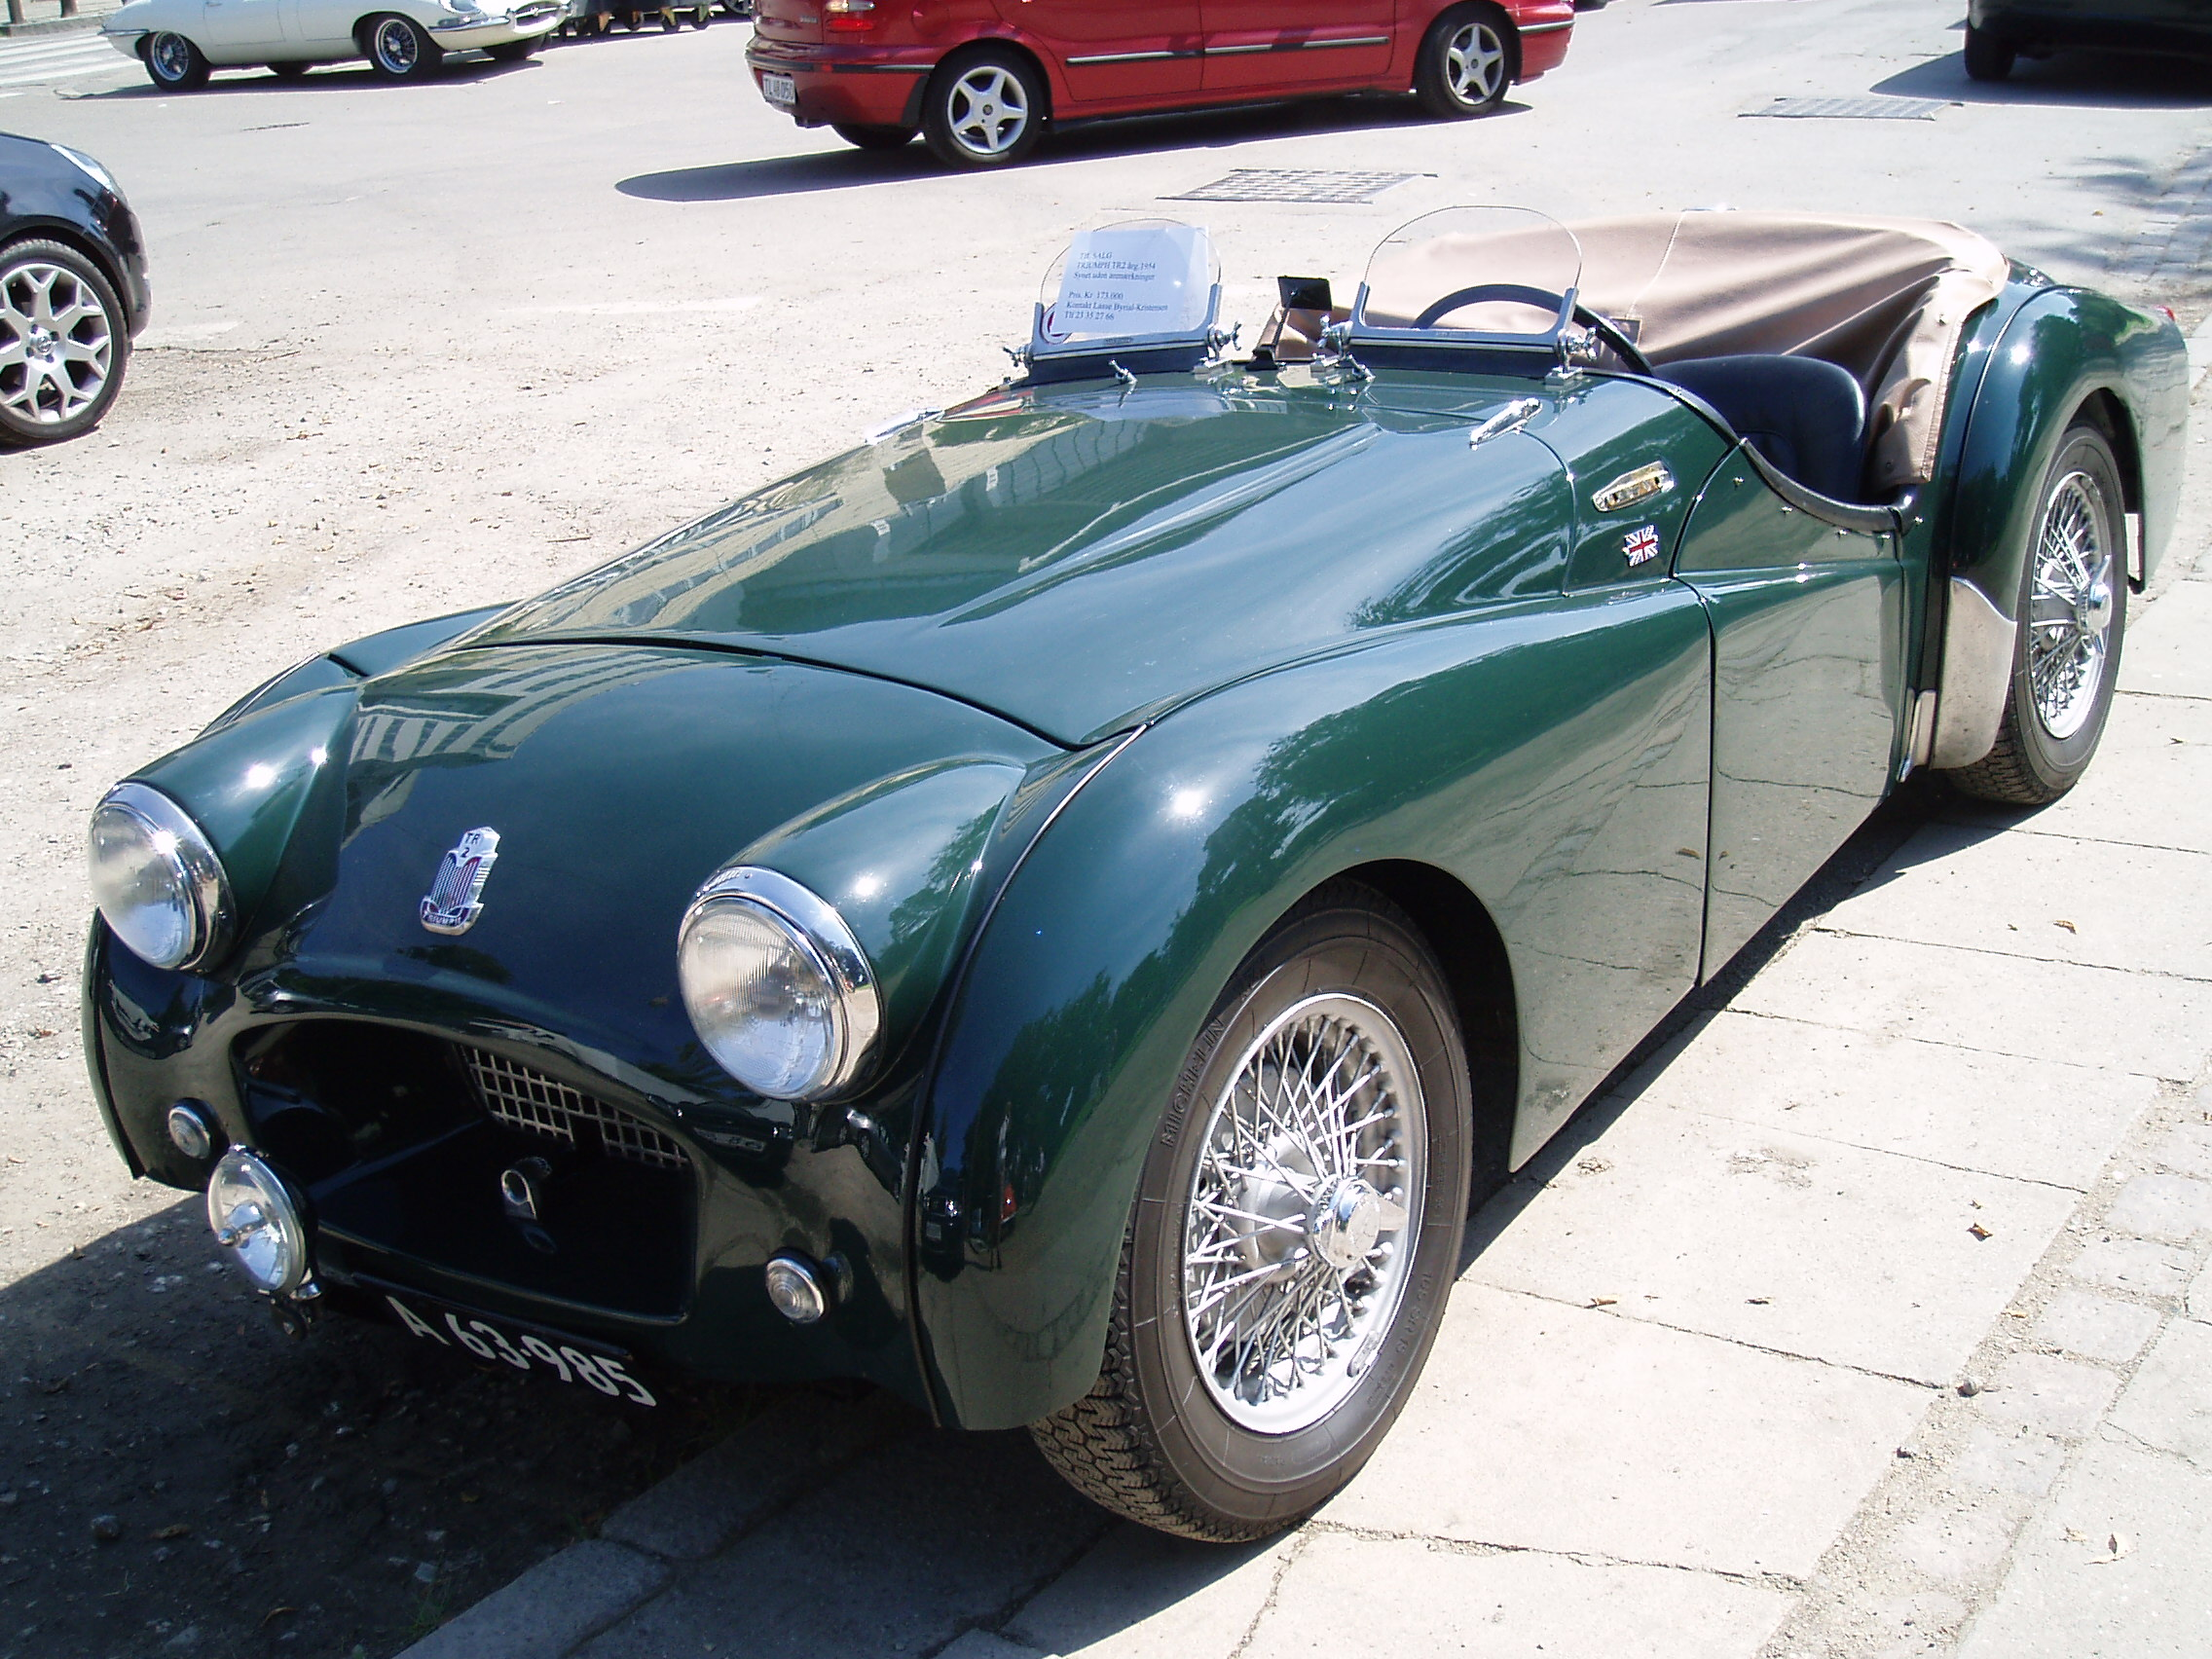 rear cars with File Triumph Tr2 1954 Fs on Detail 2017 Dodge Challenger Scat pack Used 16703074 together with Index moreover Off road together with Audi Q2 Edition 1 Limited Run Model Sale September further Mirage.